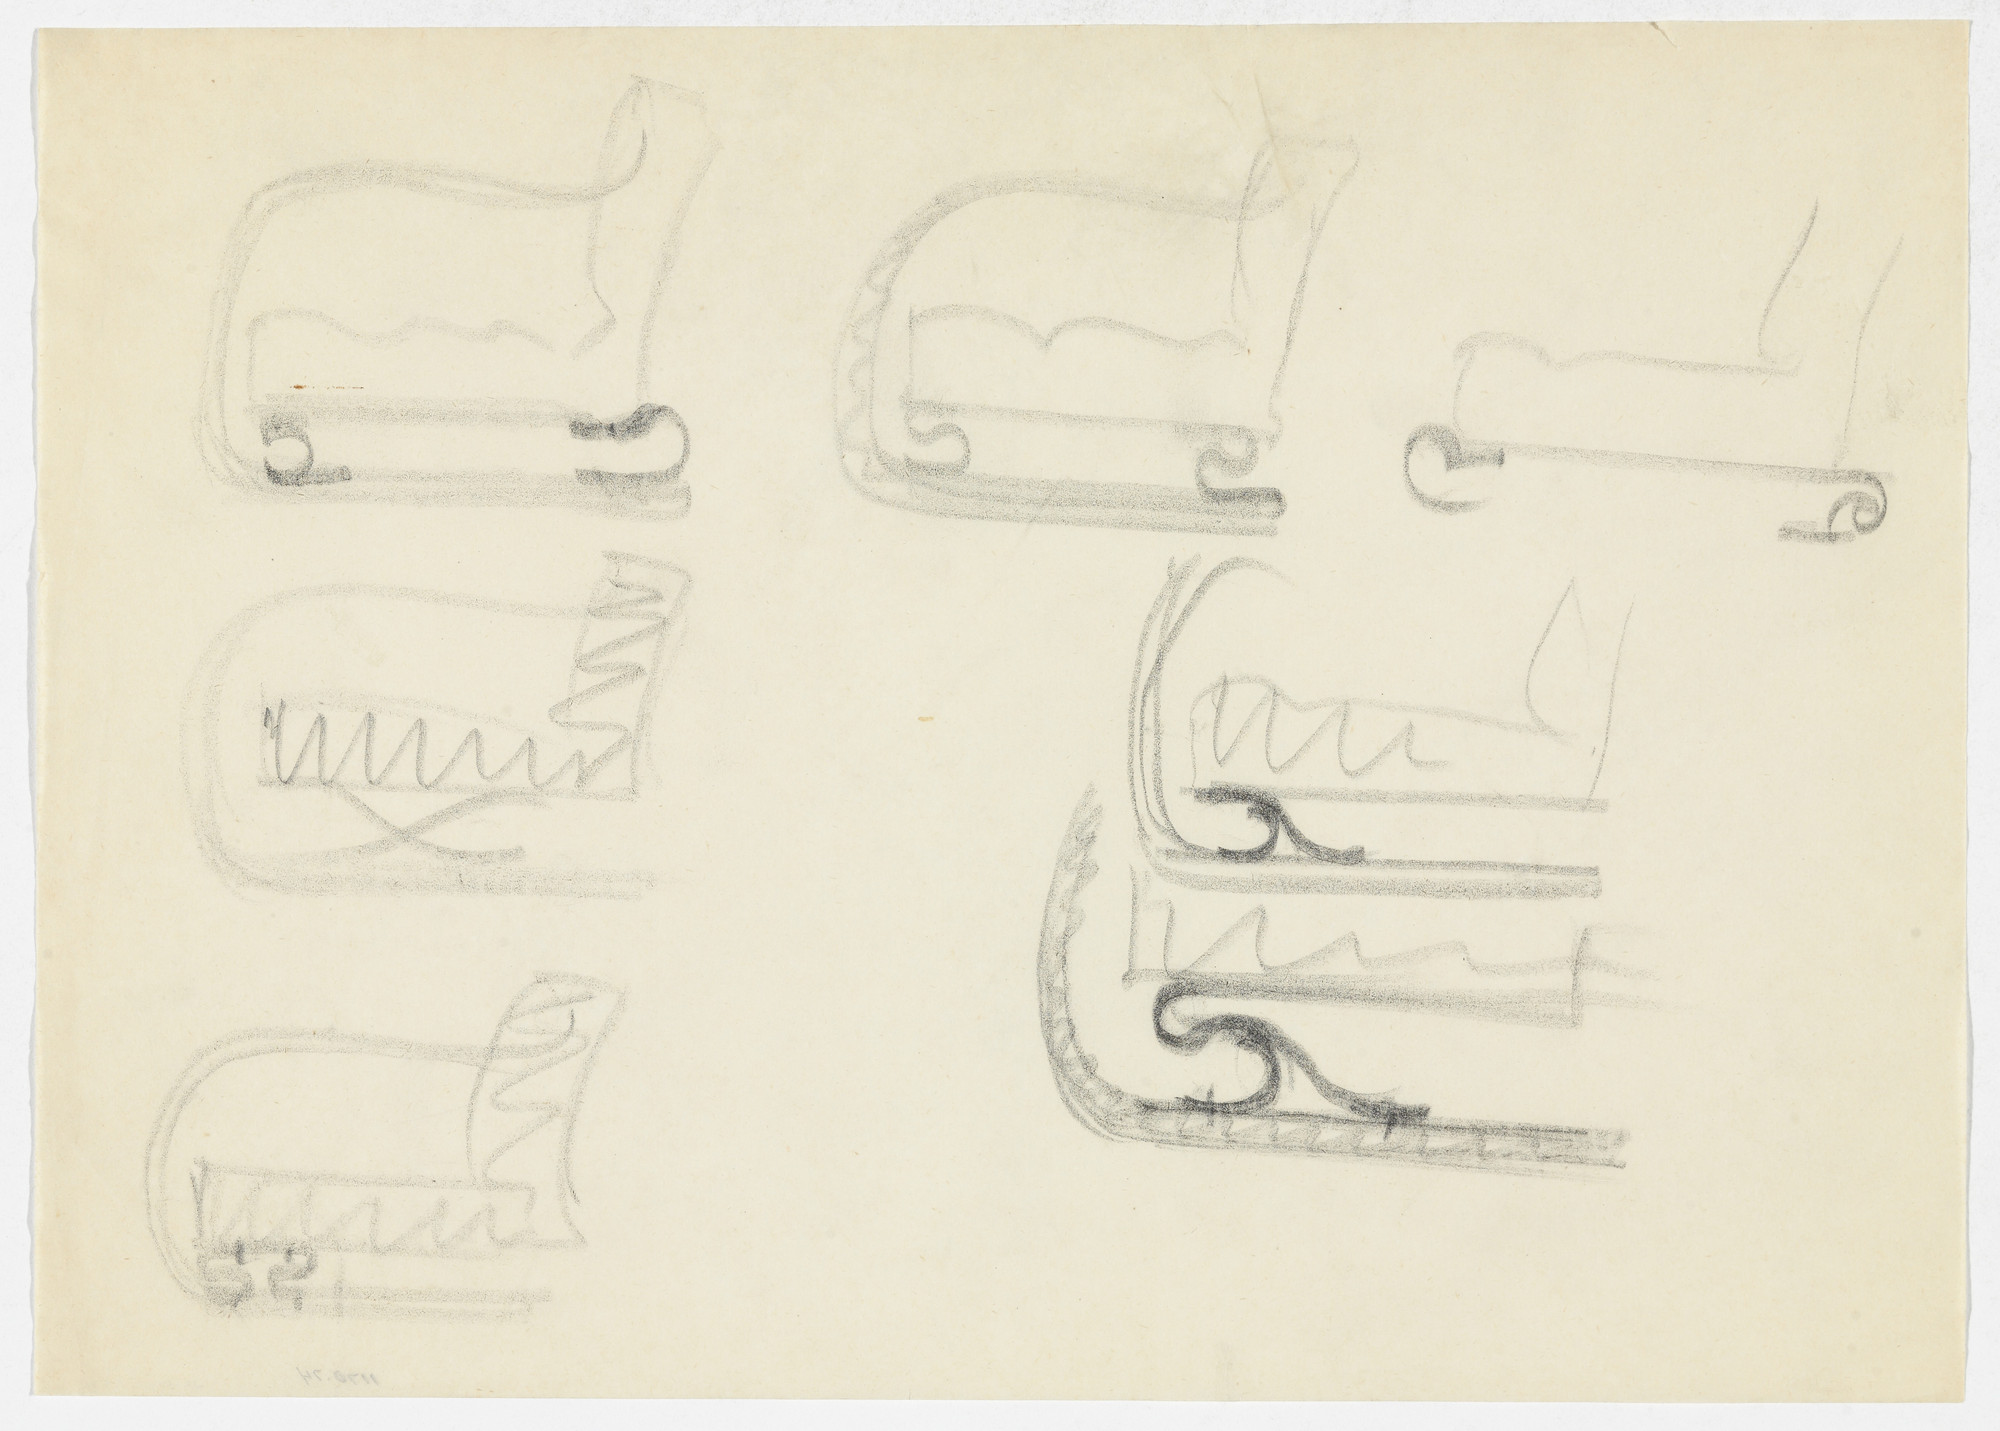 Ludwig Mies van der Rohe. Lounge Chair with Arms, Elevation sketches. 1934-1935